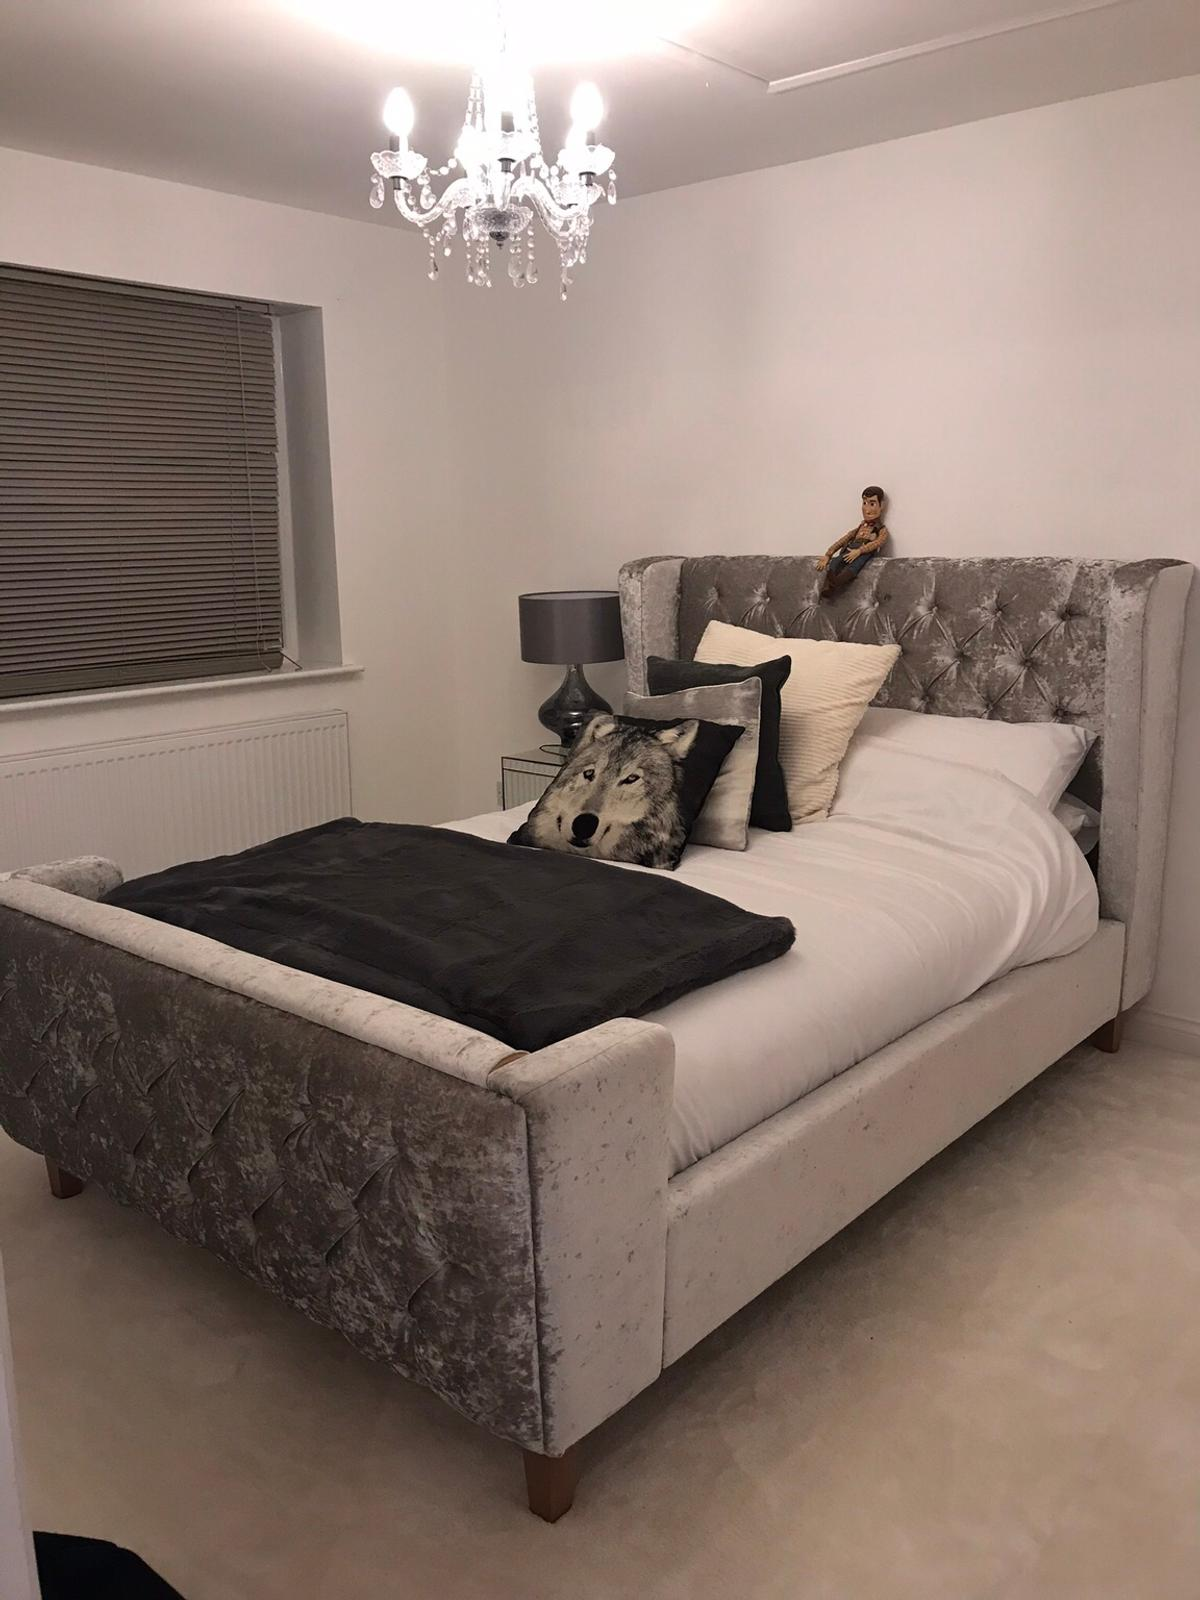 Picture of: Beautiful Grey King Size Dfs Bed For Sale In London Borough Of Havering For 360 00 For Sale Shpock